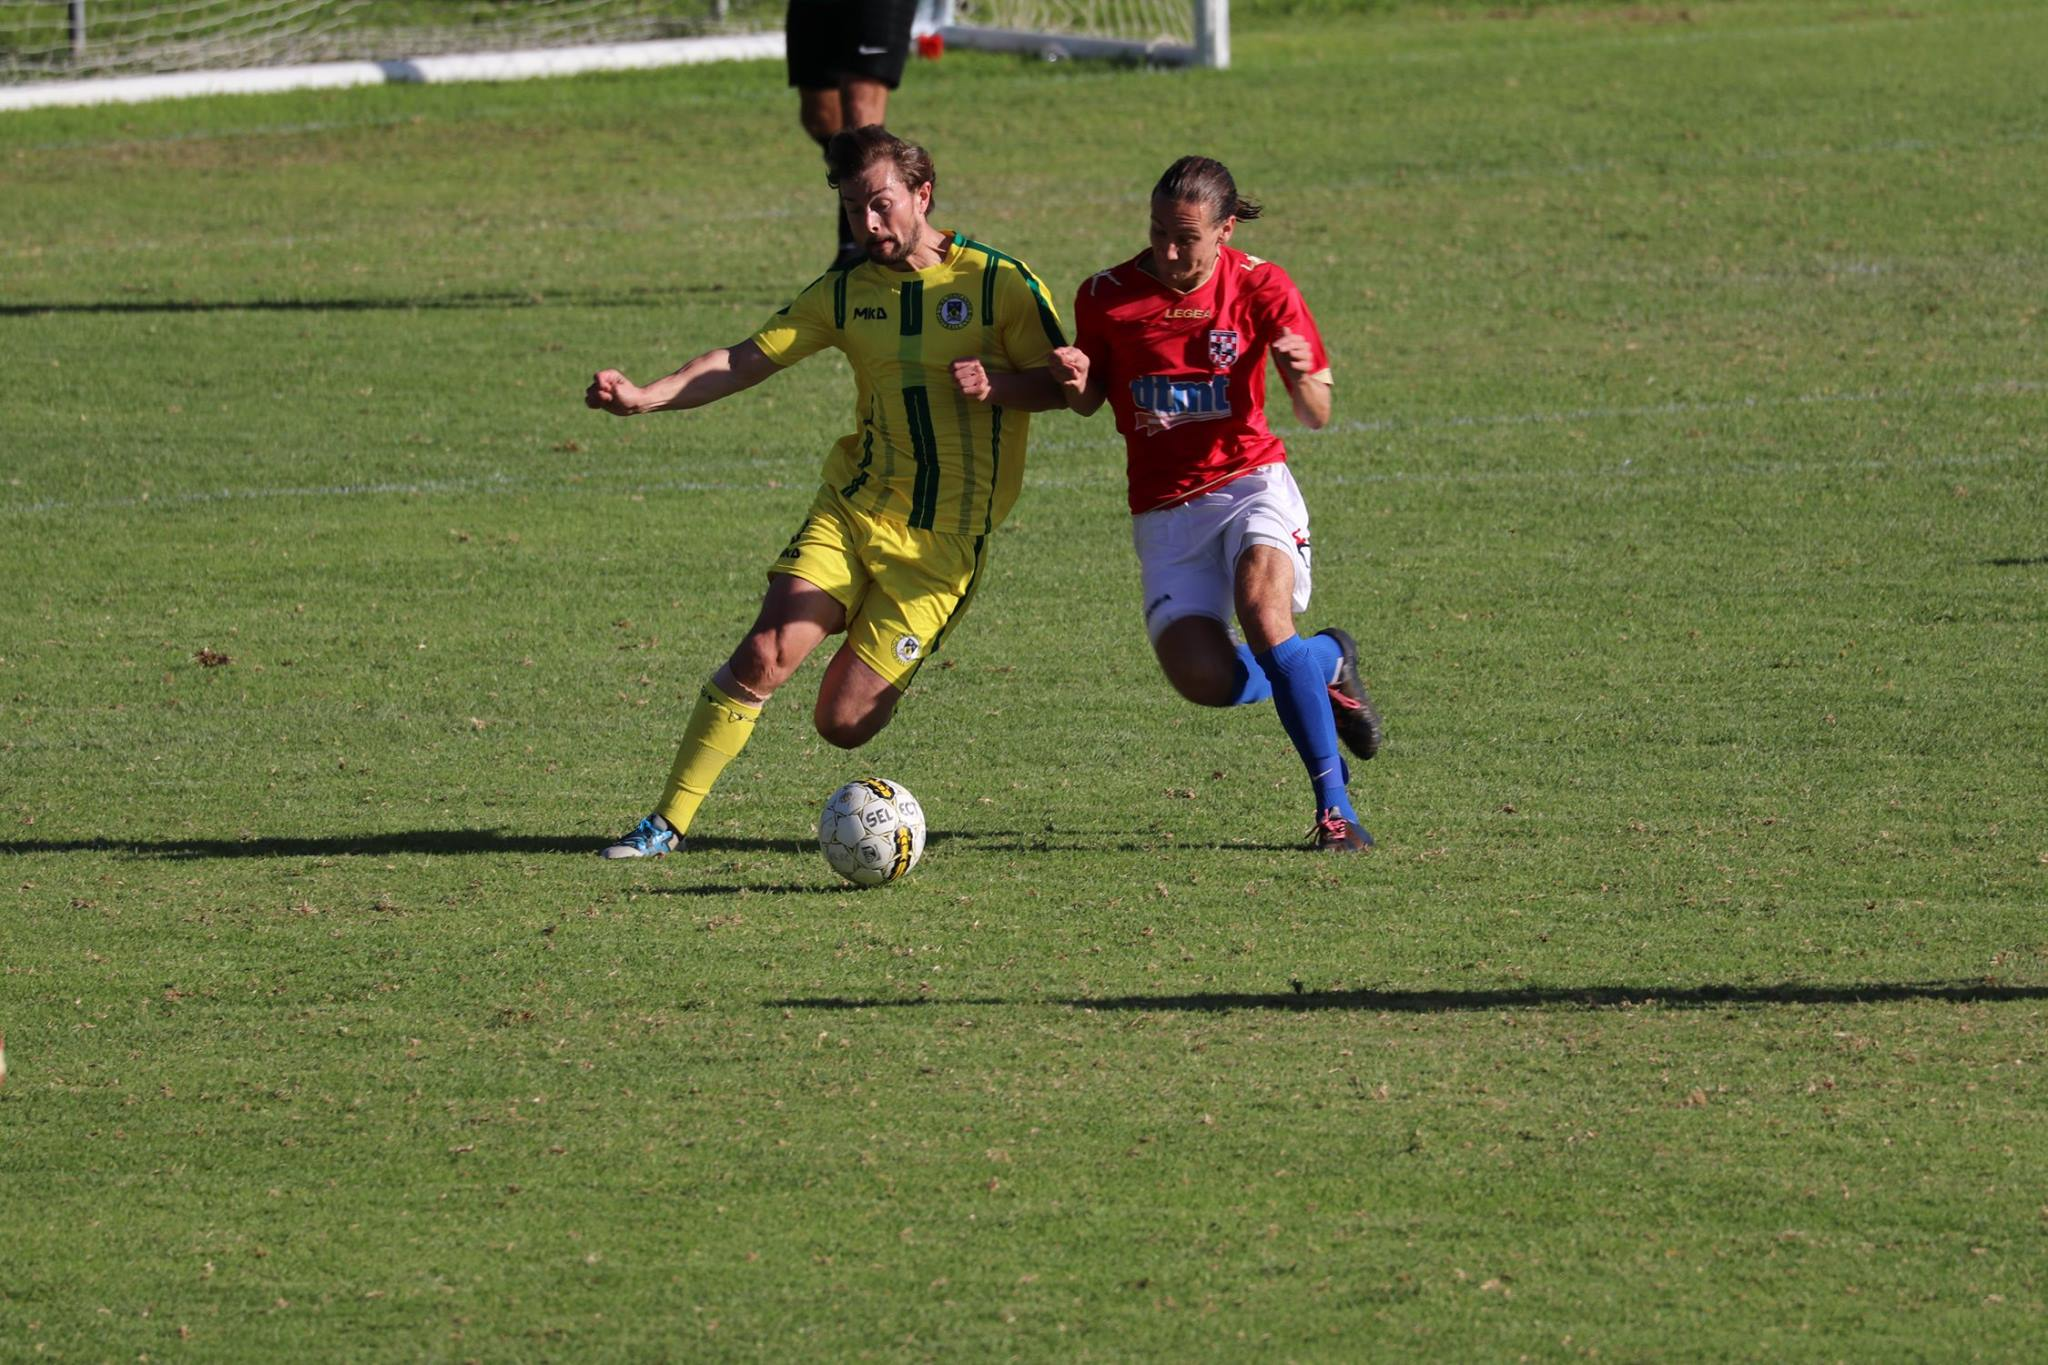 ROBBIE BLACK FIGHTS FOR THE BALL AGAINST KNIGHTS - CREDIT: GABRIELE MALUGA